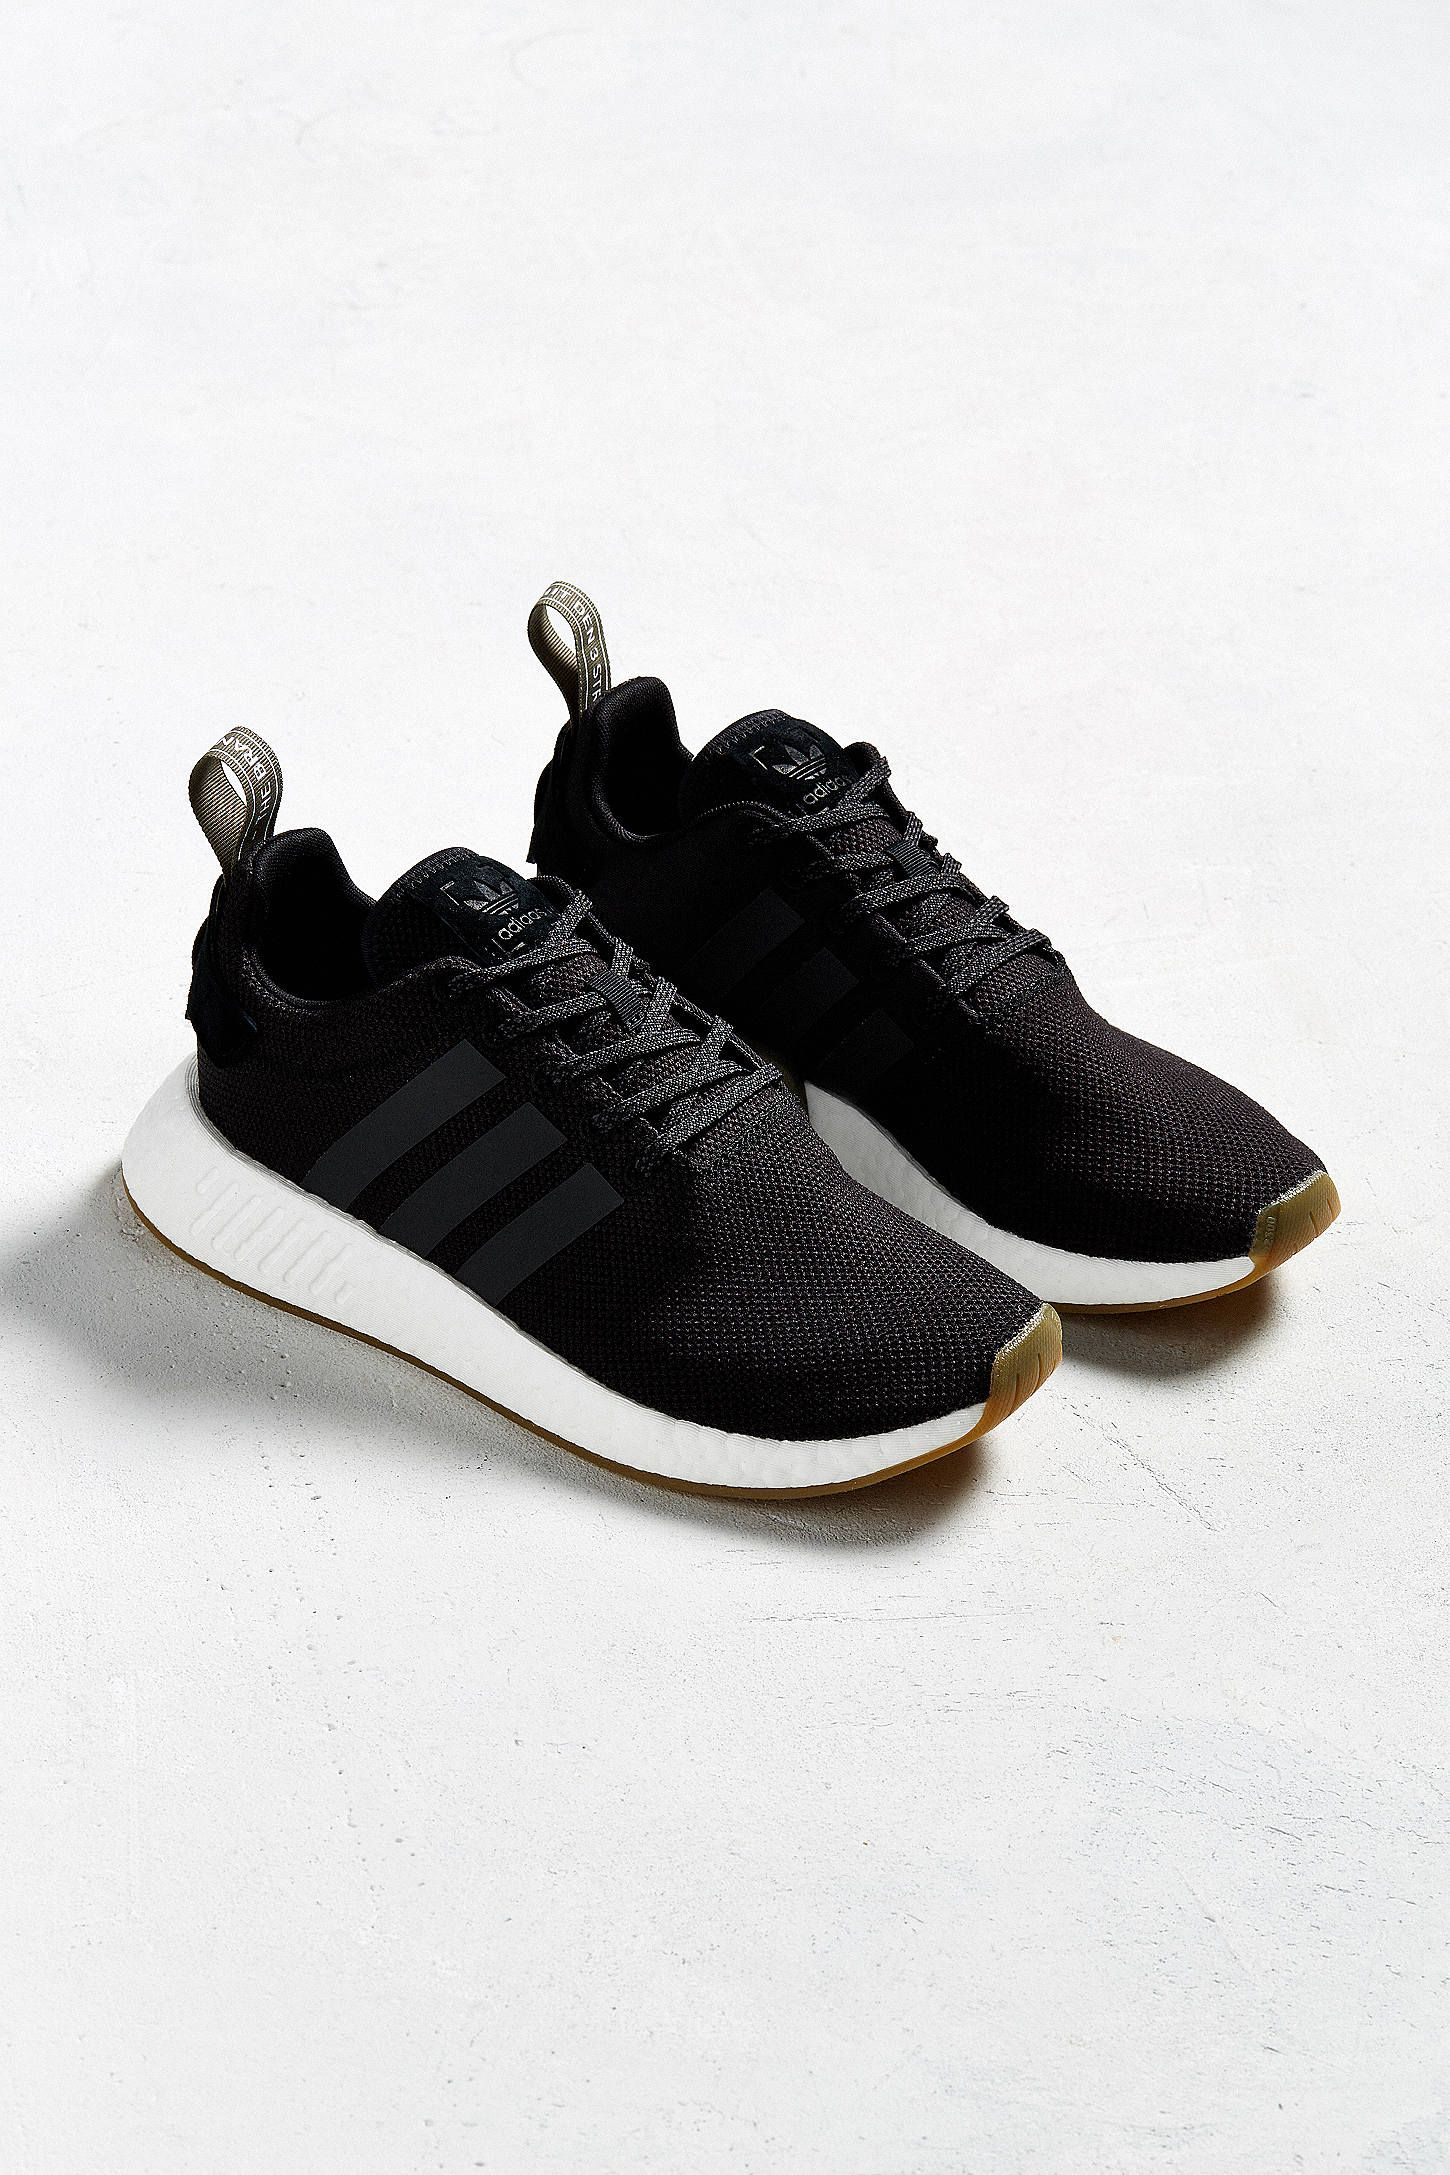 UNDEFEATED X ADIDAS NMD R1 PK. 40 - 45.  sxfar  sneakerheads  sgkicks   kicks   adidas shoes   Adidas shoes, Running Shoes, Shoes 44f21eaa626f